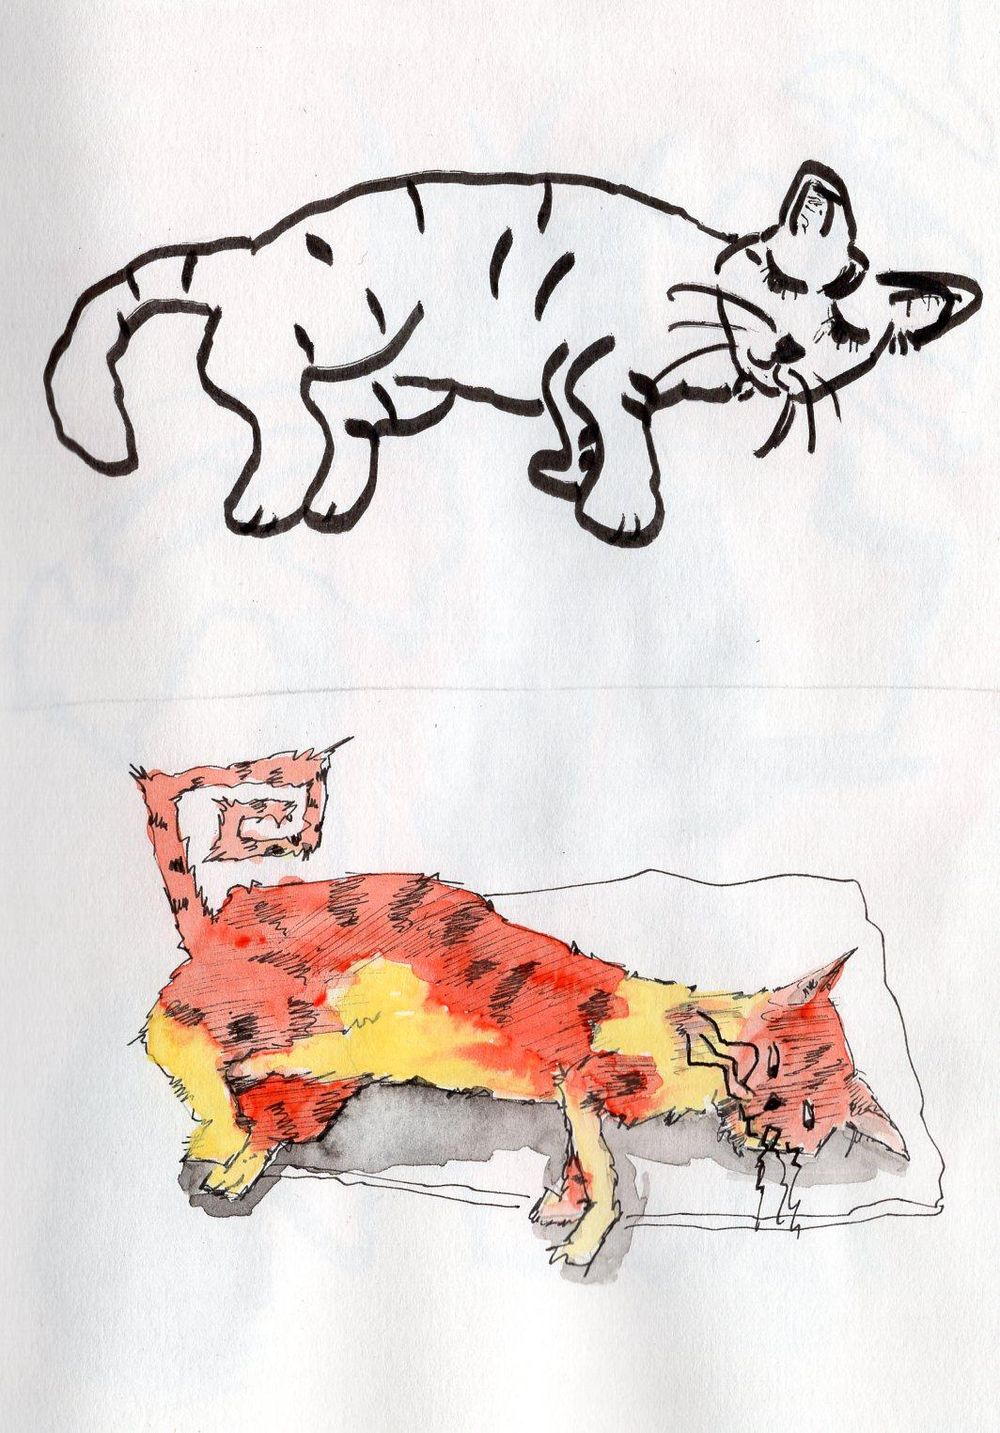 Fun with cats, ink & watercolor - image 2 - student project